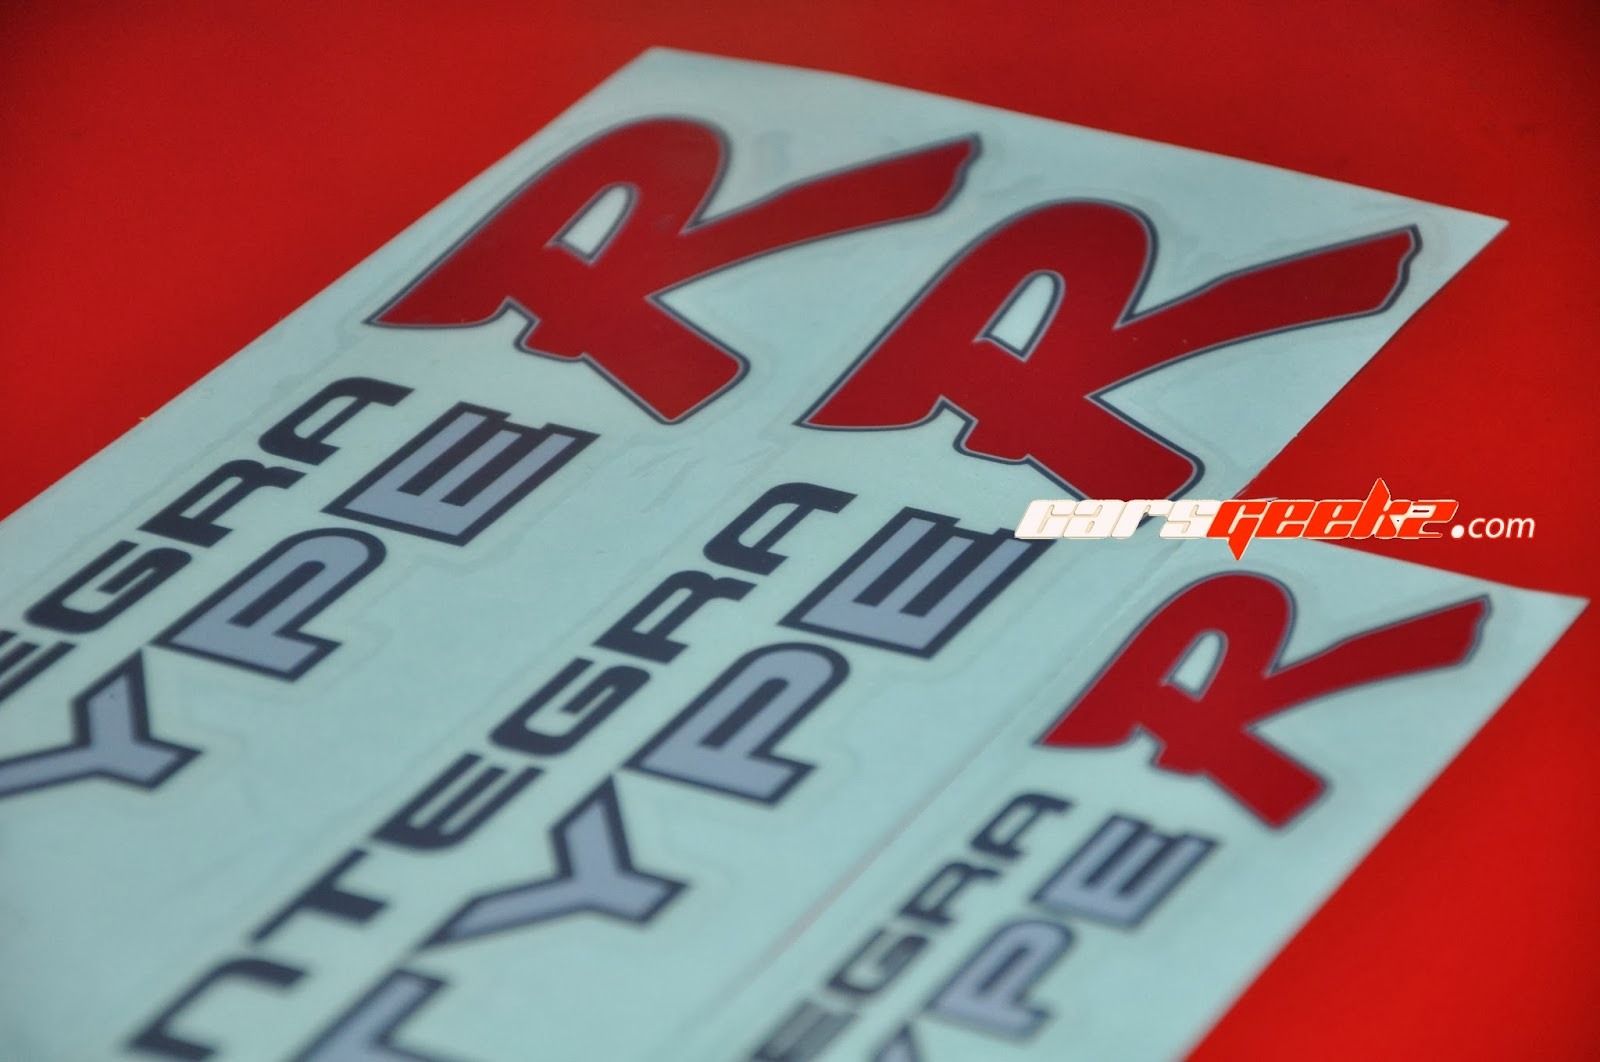 integra type r decal vinyl